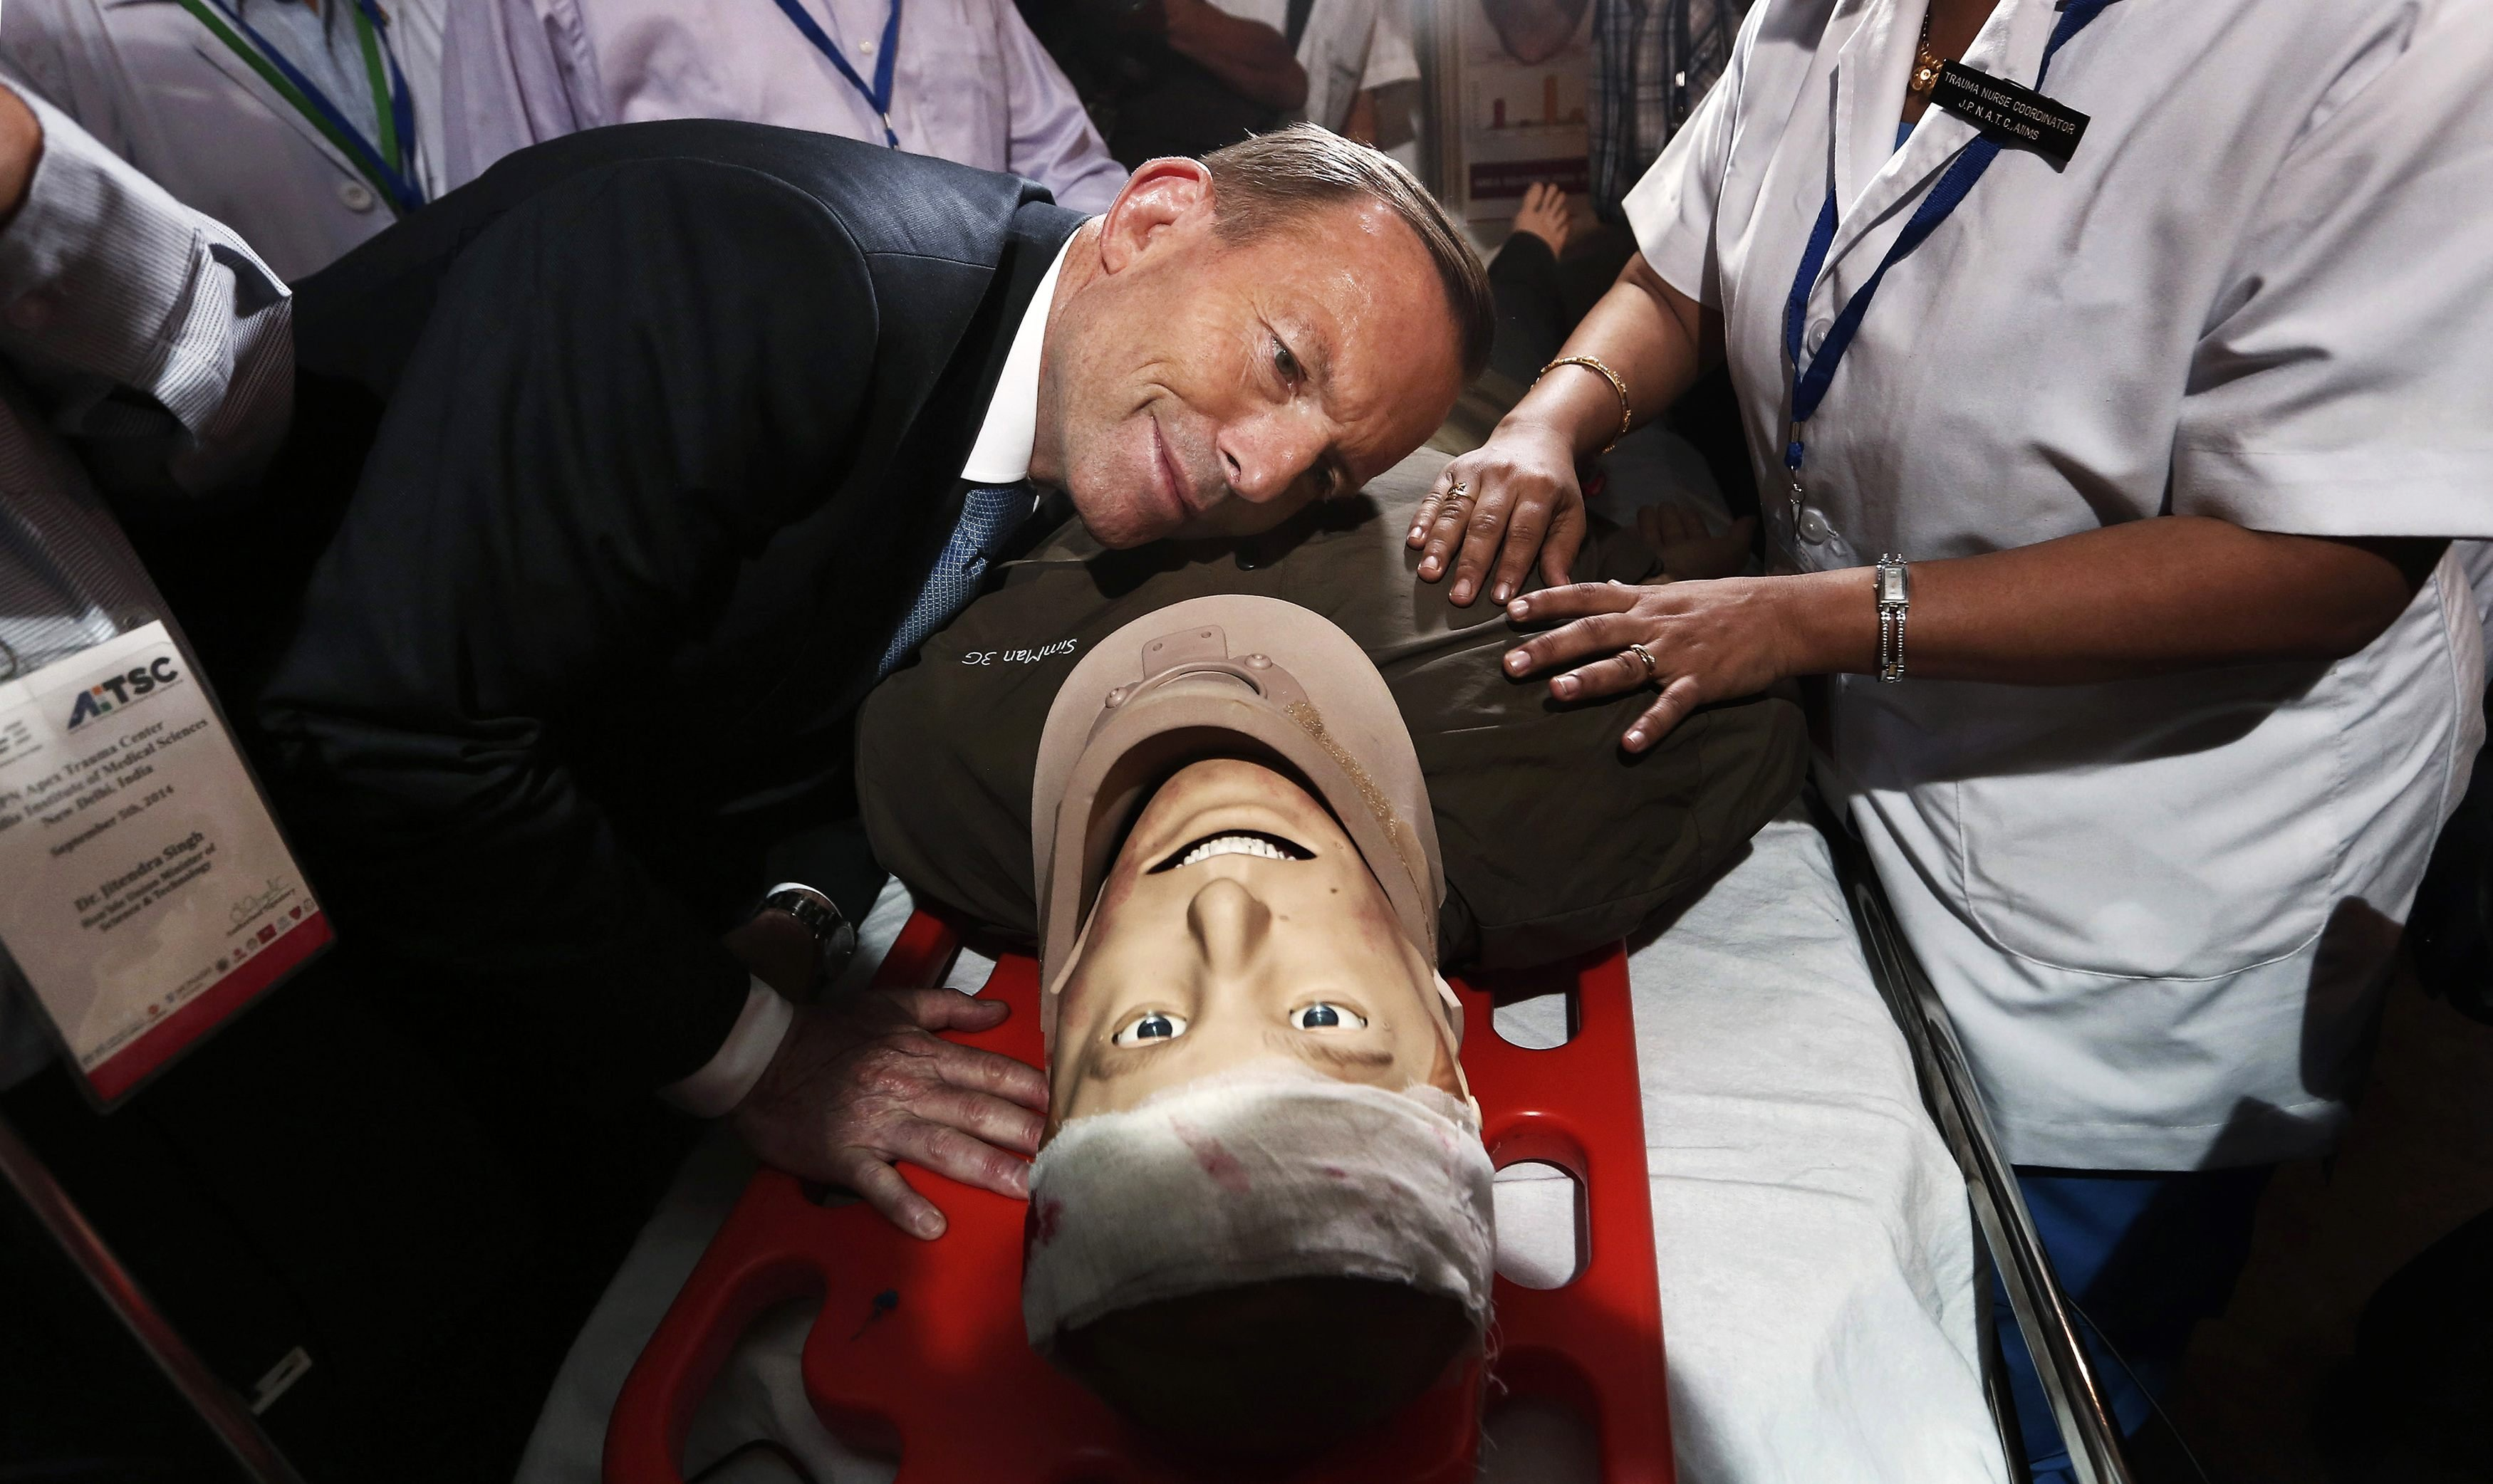 Australian Prime Minister Tony Abbott takes part in a presentation with a patient simulator during his visit to the trauma centre of the All India Institutes of Medical Sciences in New Delhi on Sept. 5, 2014.